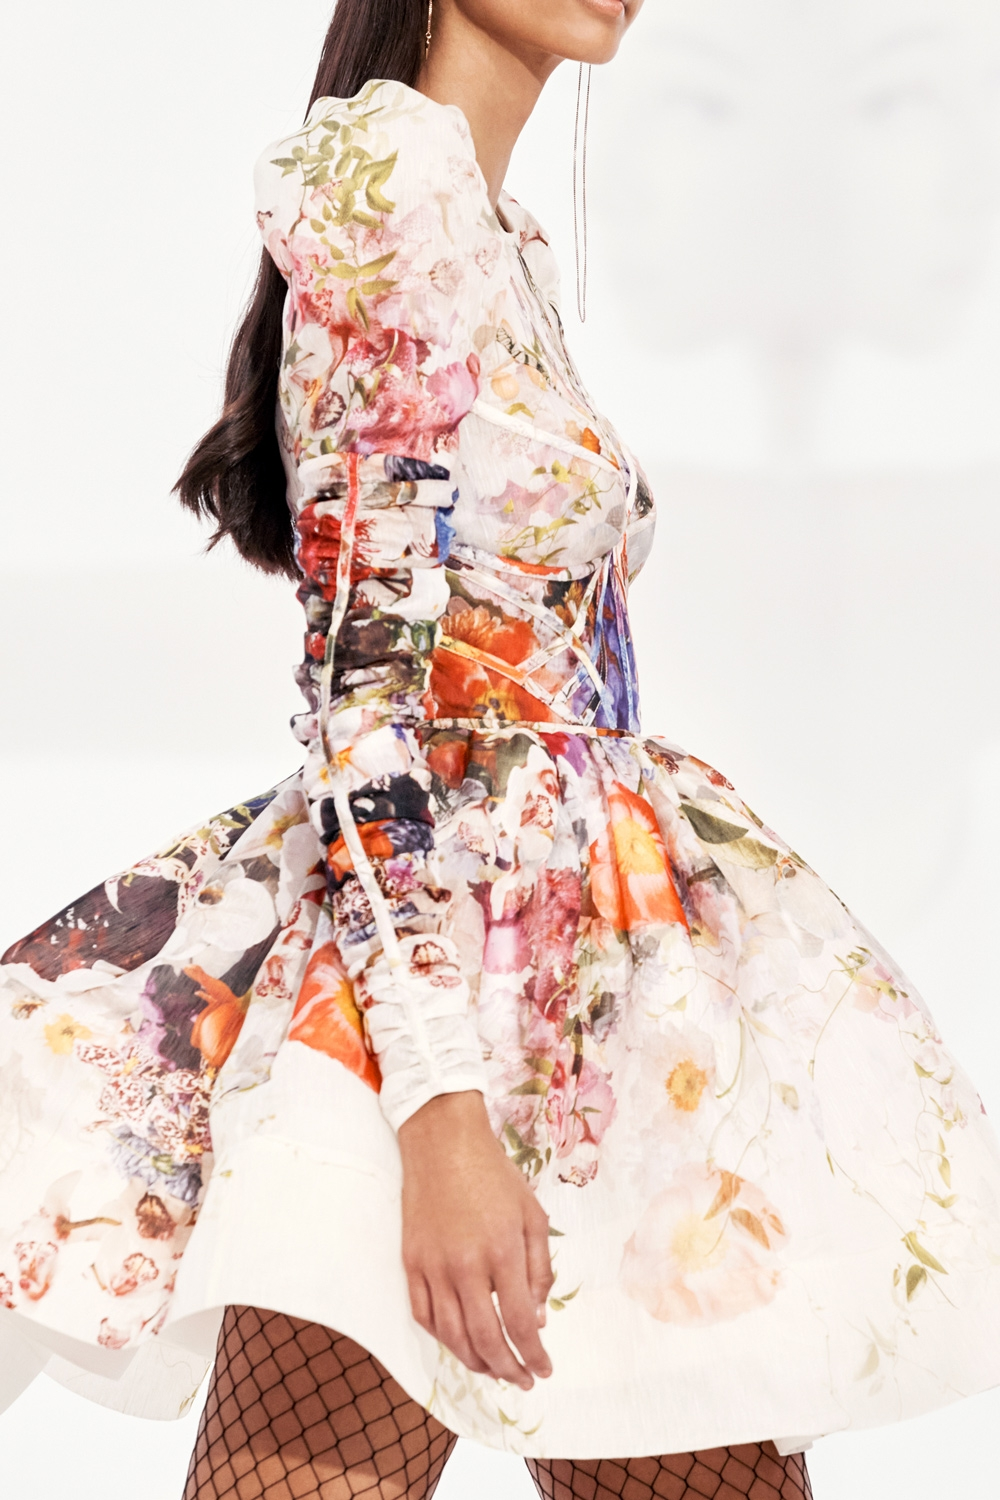 IN THE DETAIL: LOOK 35 SPRING READY TO WEAR 2022